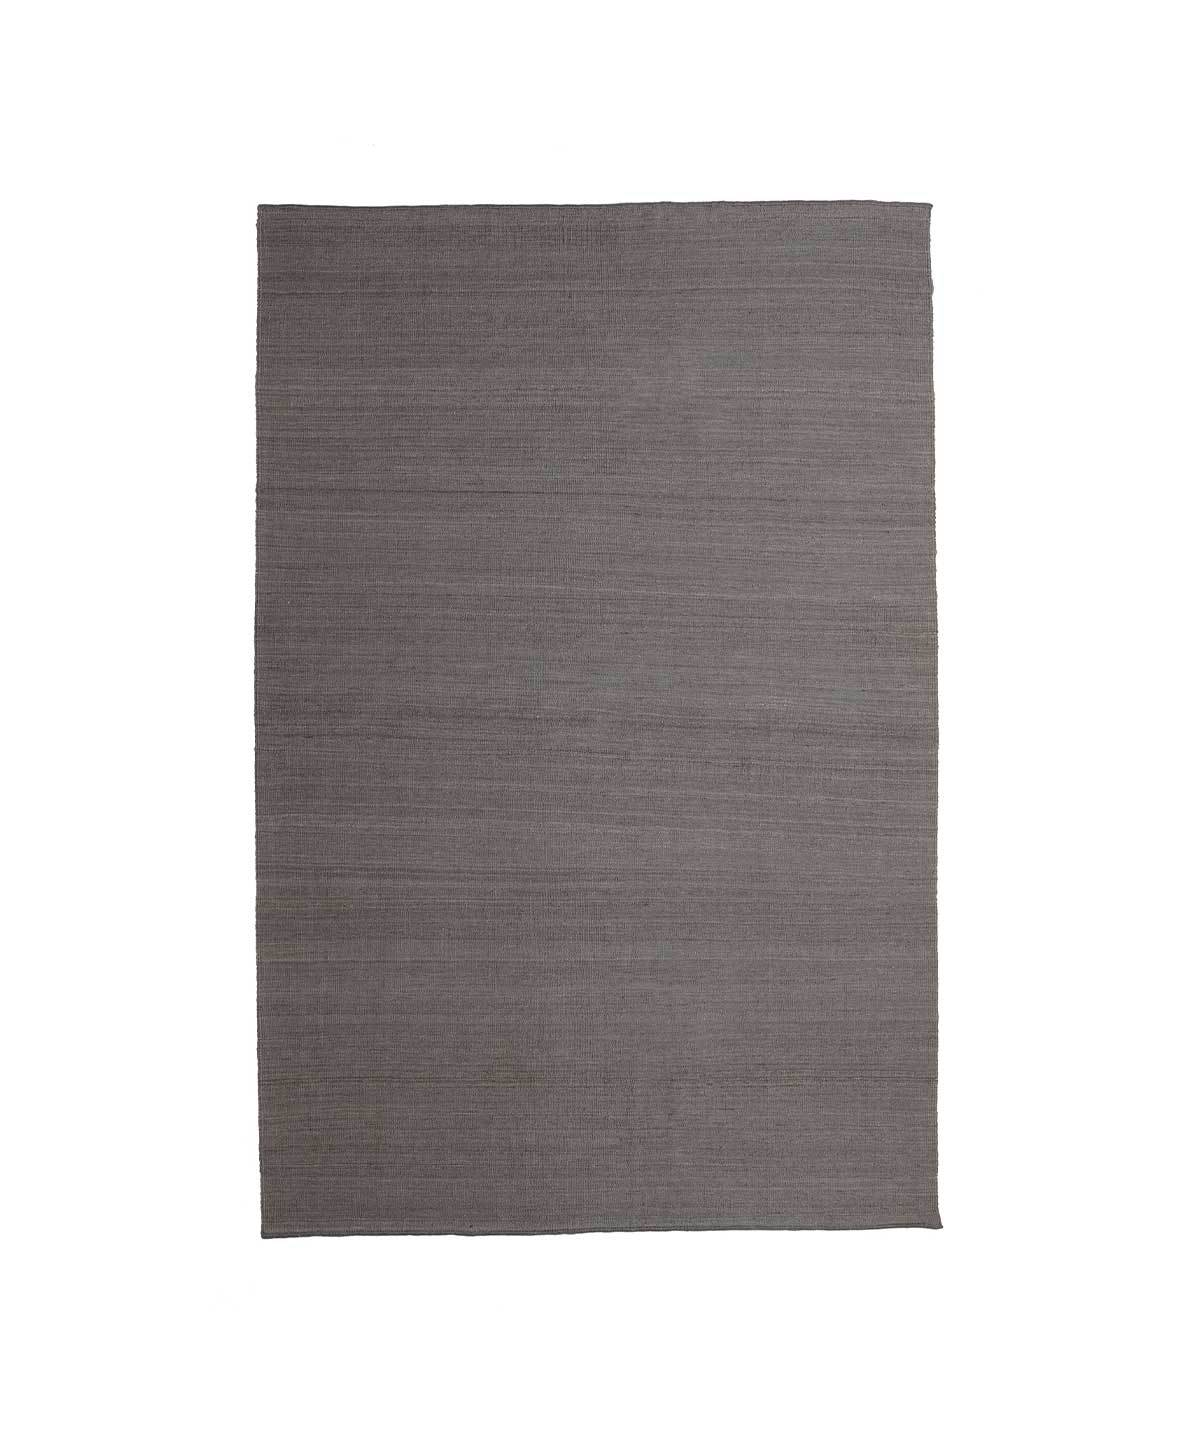 Nomad Rug in Grey by nanimarquina | TRNK